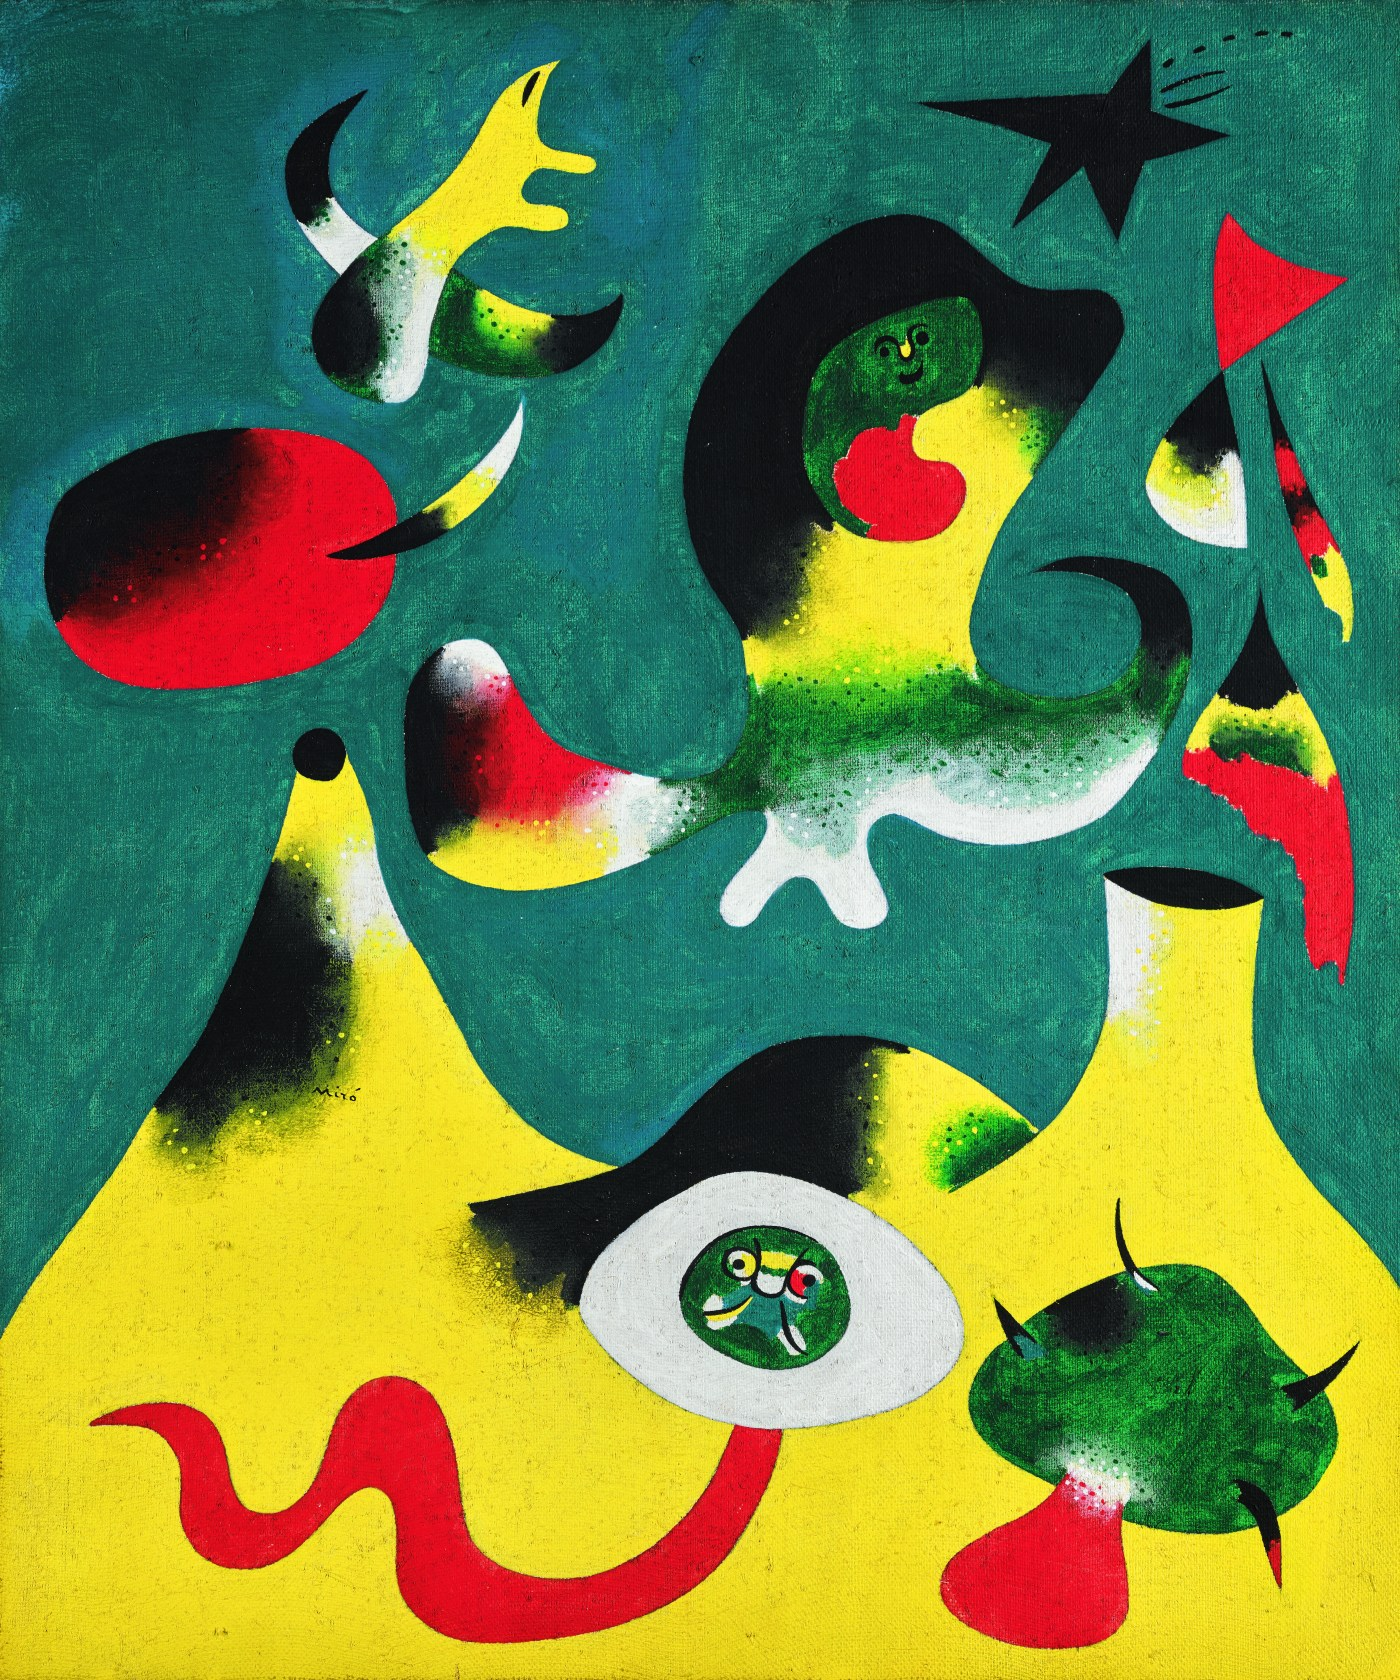 Lot 16 Joan Miró, Peinture (L'Air), 1938, oil on canvas (est. £10,000,000 – 15,000,000)